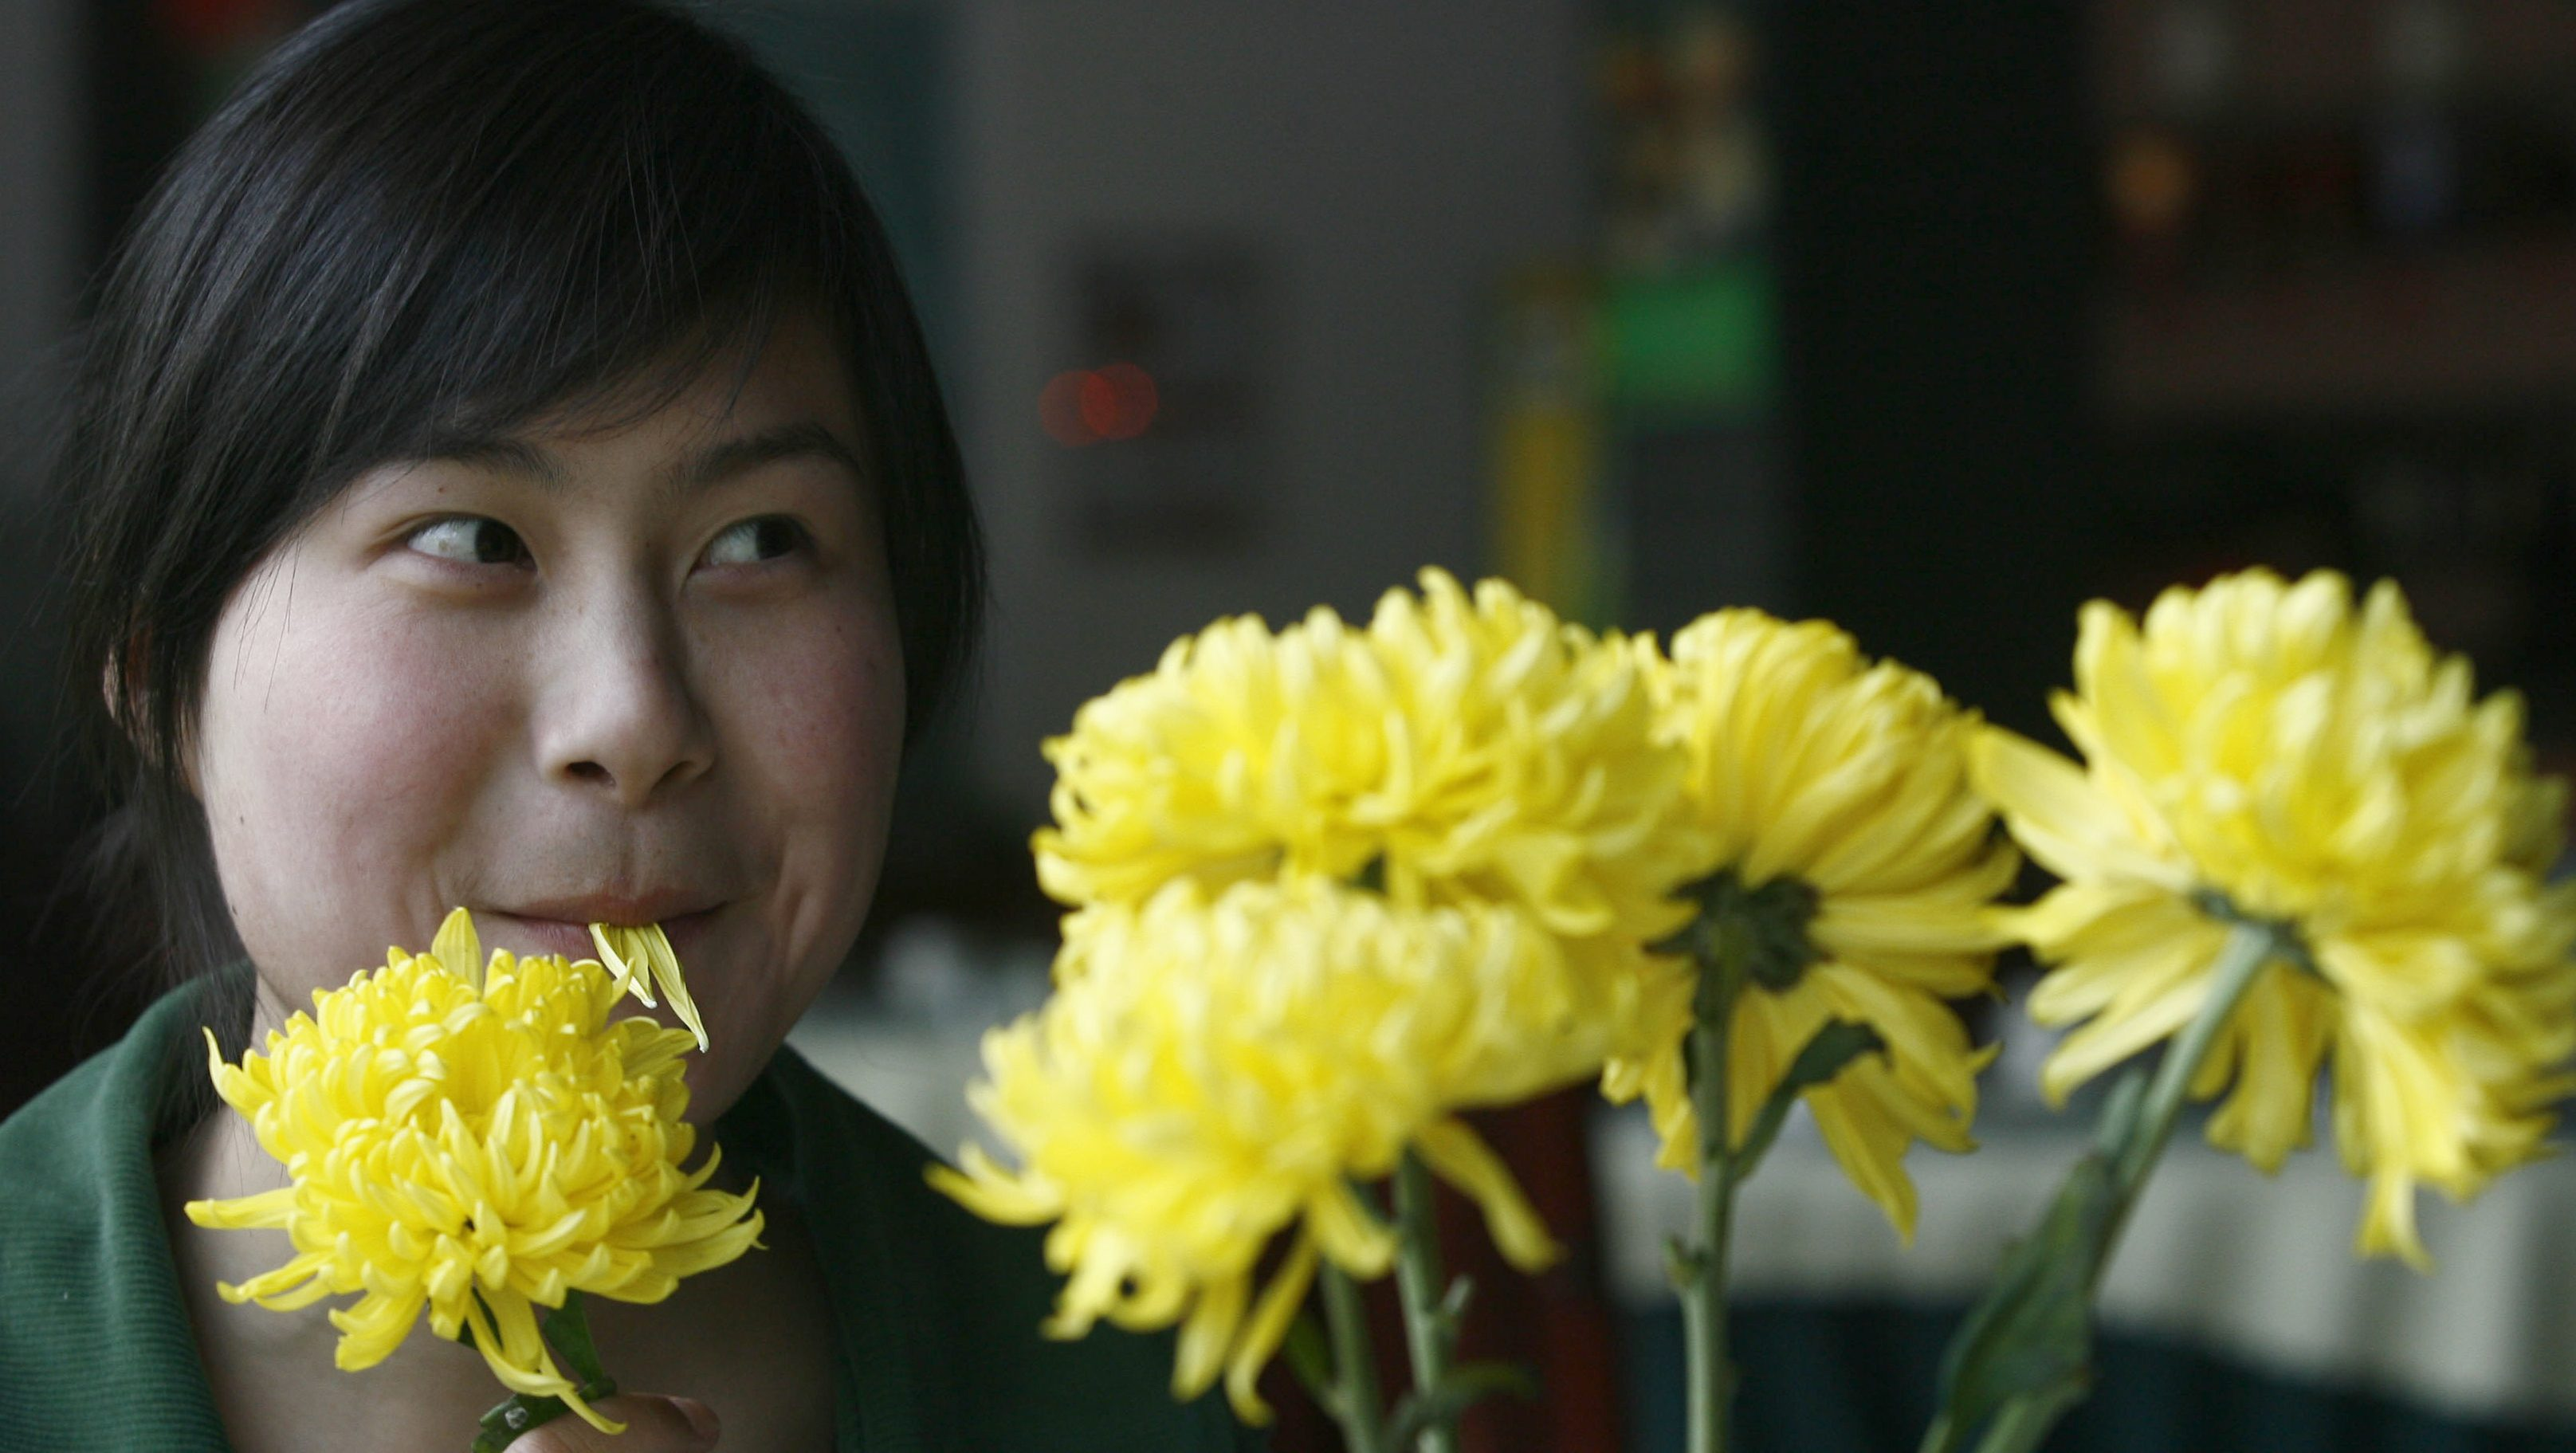 A customer eats a chrysanthemum flower at a restaurant in Wuhan, Hubei province March 2, 2008. More than 20 dishes made of various flowers including rose, lily, chrysanthemum, cherry blossom and orchids are served in the restaurant, local media reported. REUTERS/Stringer (CHINA) CHINA OUT - GM1E4321GUL01